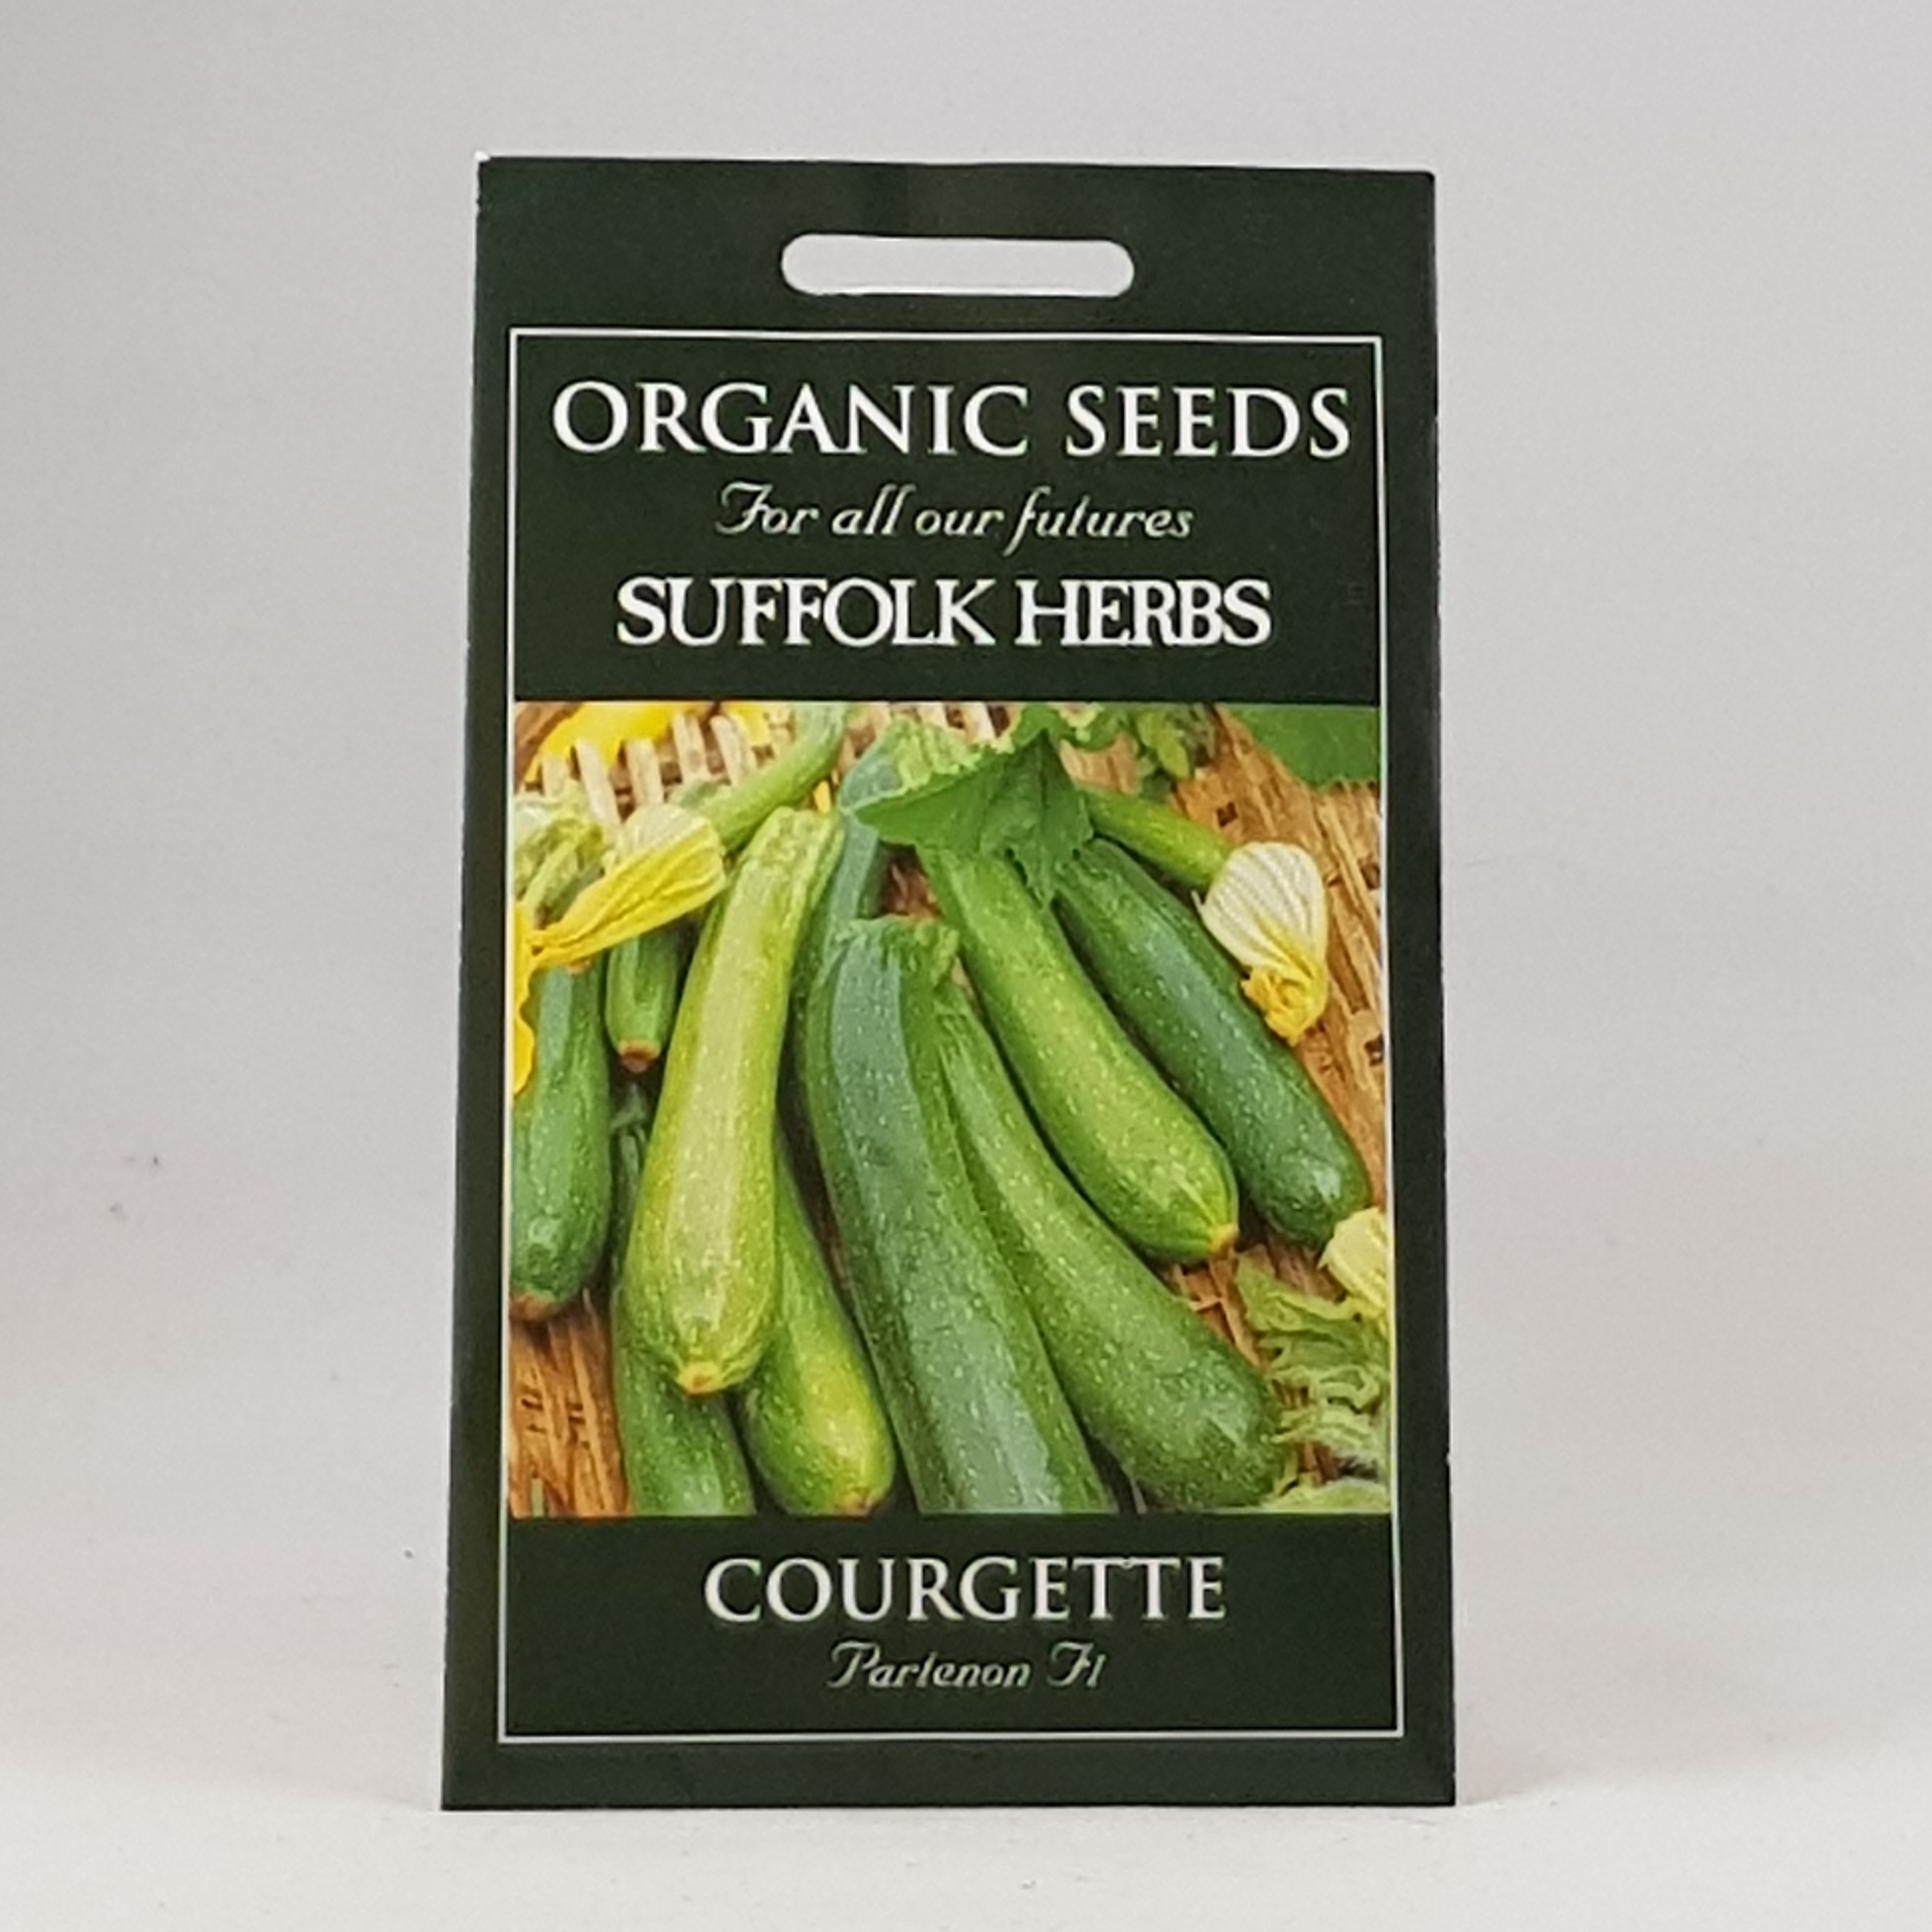 Courgette Partenon F1 Seeds